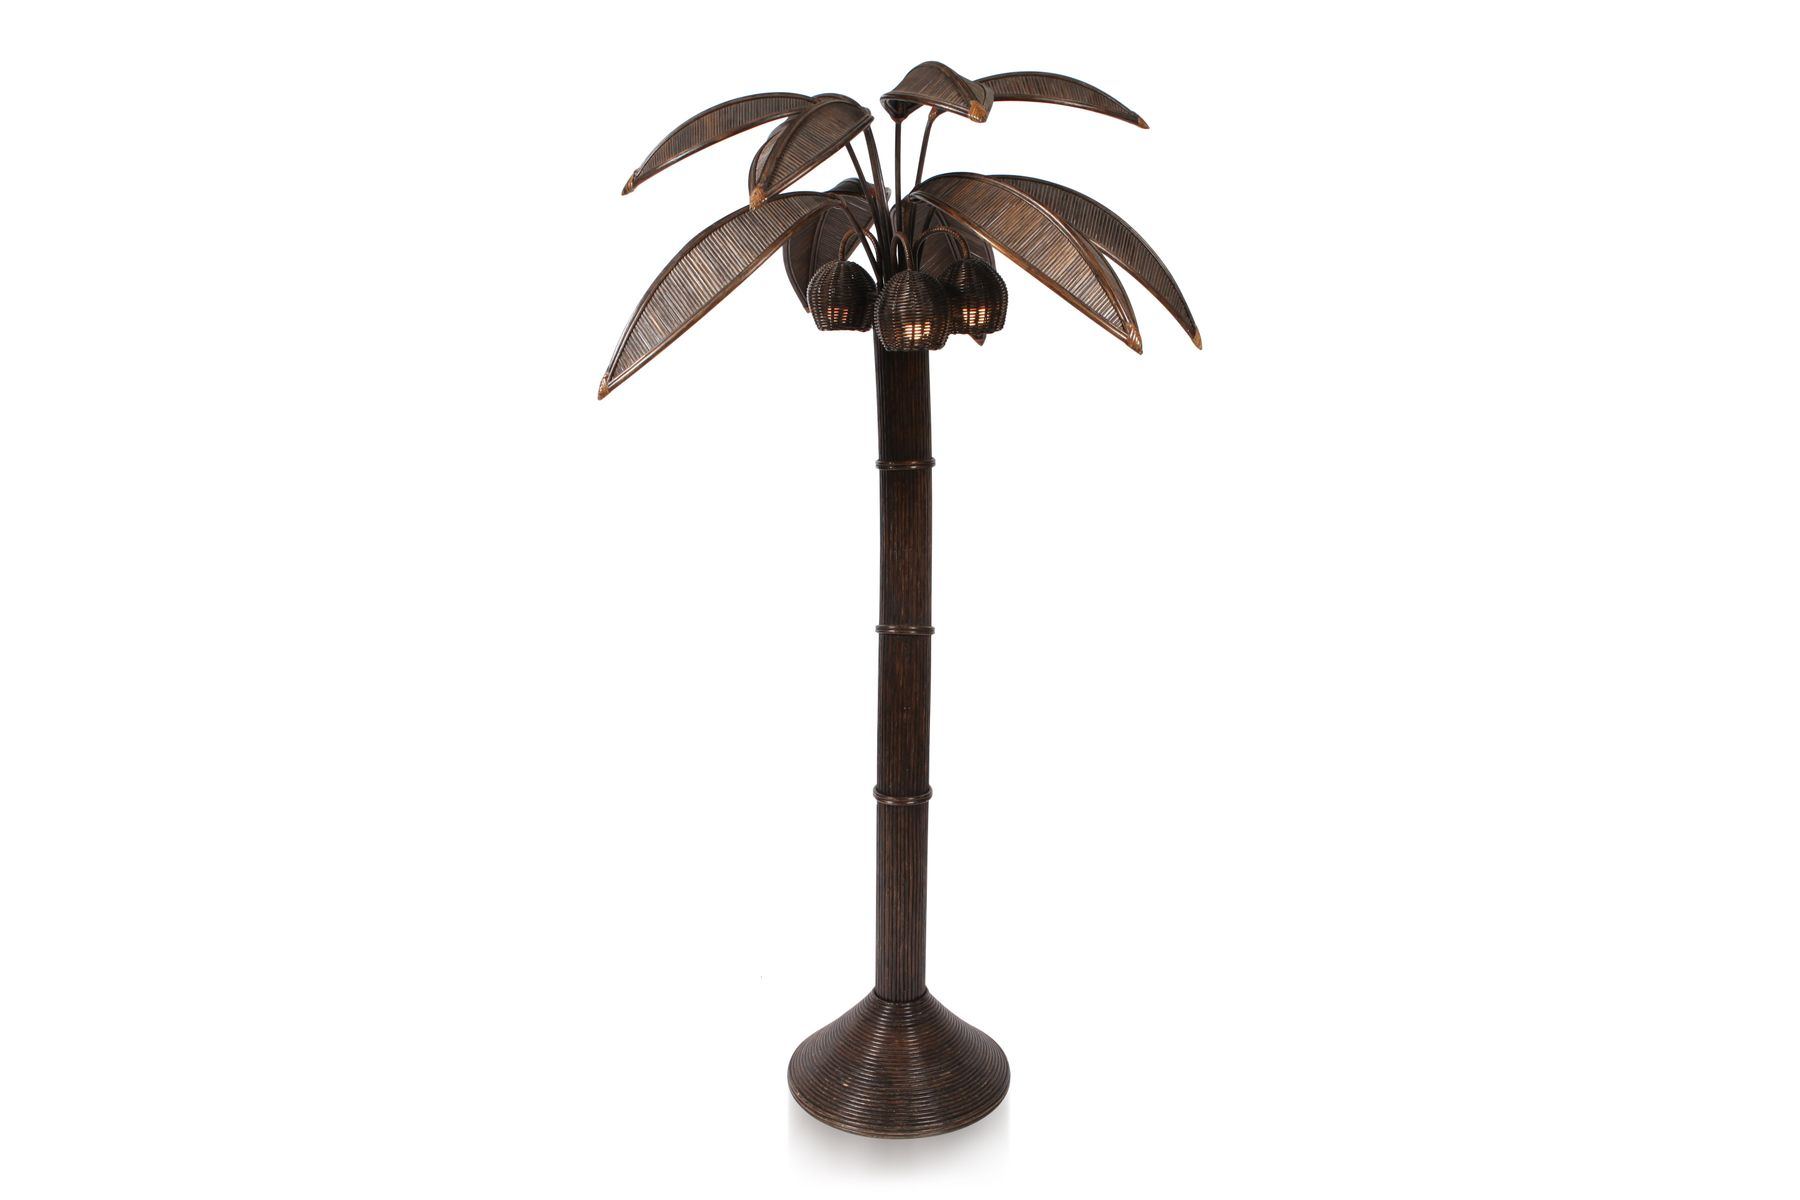 Palm tree floor lamp by mario lopez 1970s for sale at pamono palm tree floor lamp by mario lopez 1970s 6 588100 price per piece aloadofball